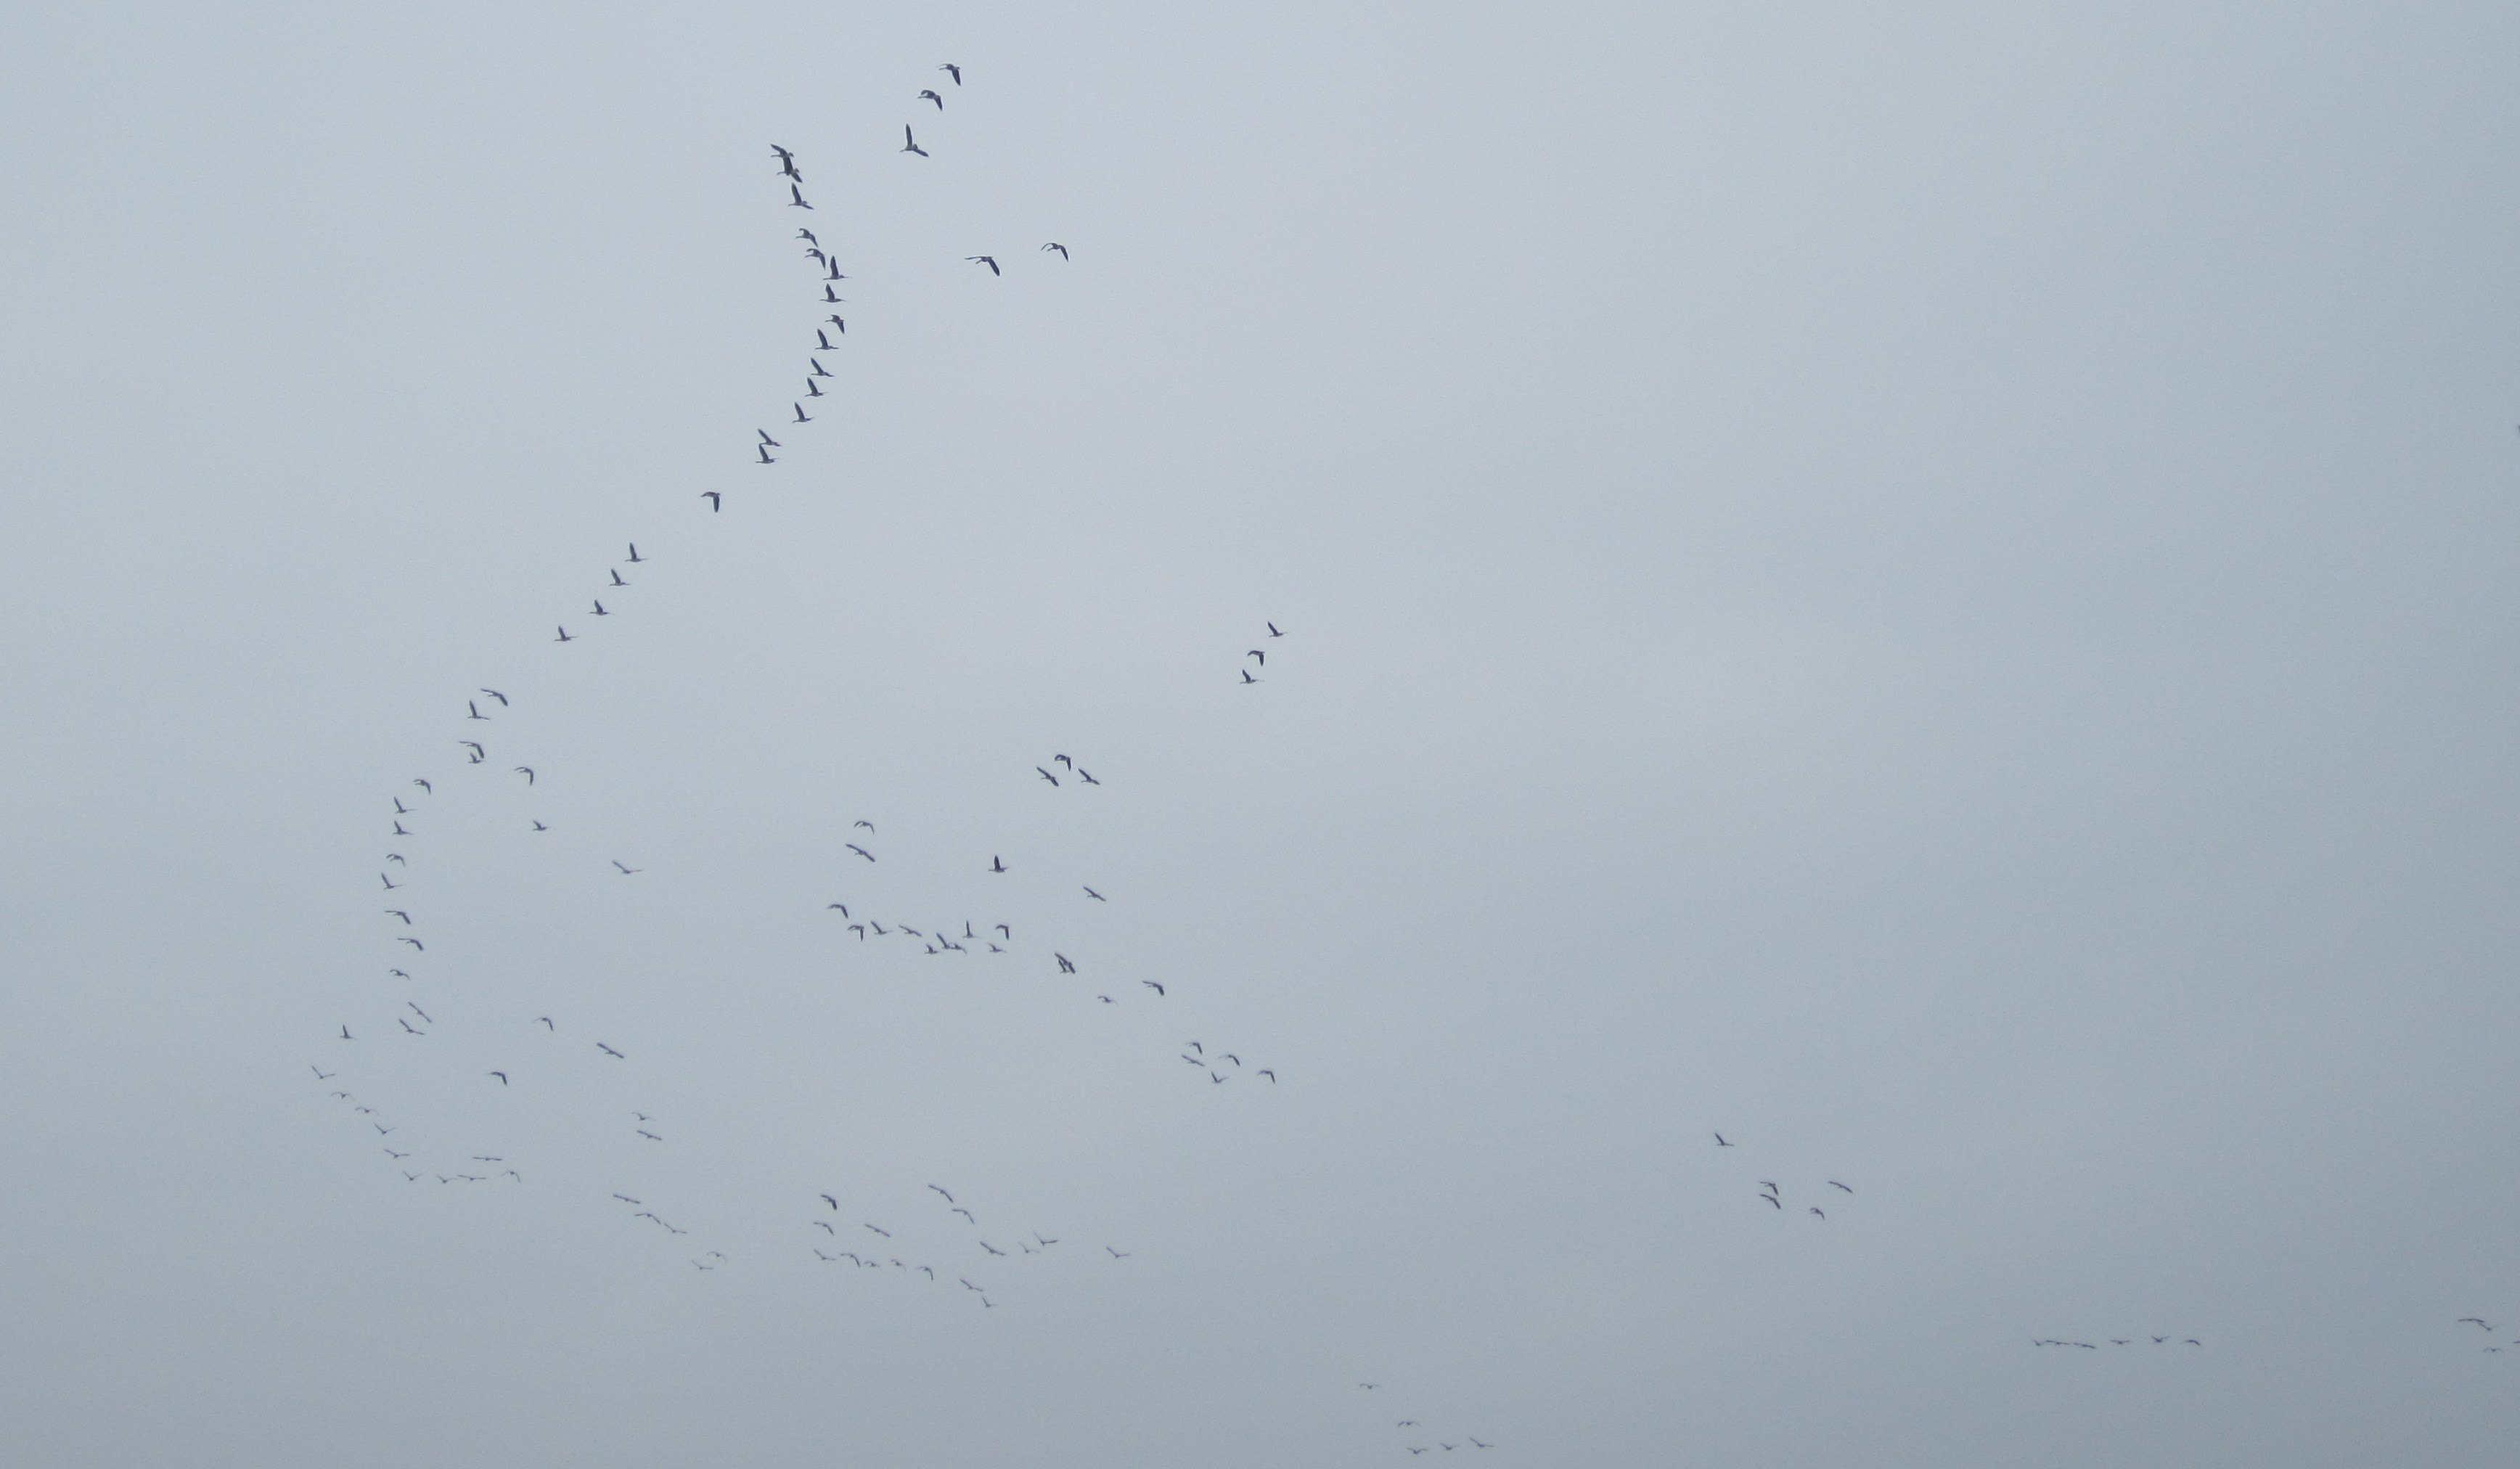 Hundreds of Geese Flying Overhead